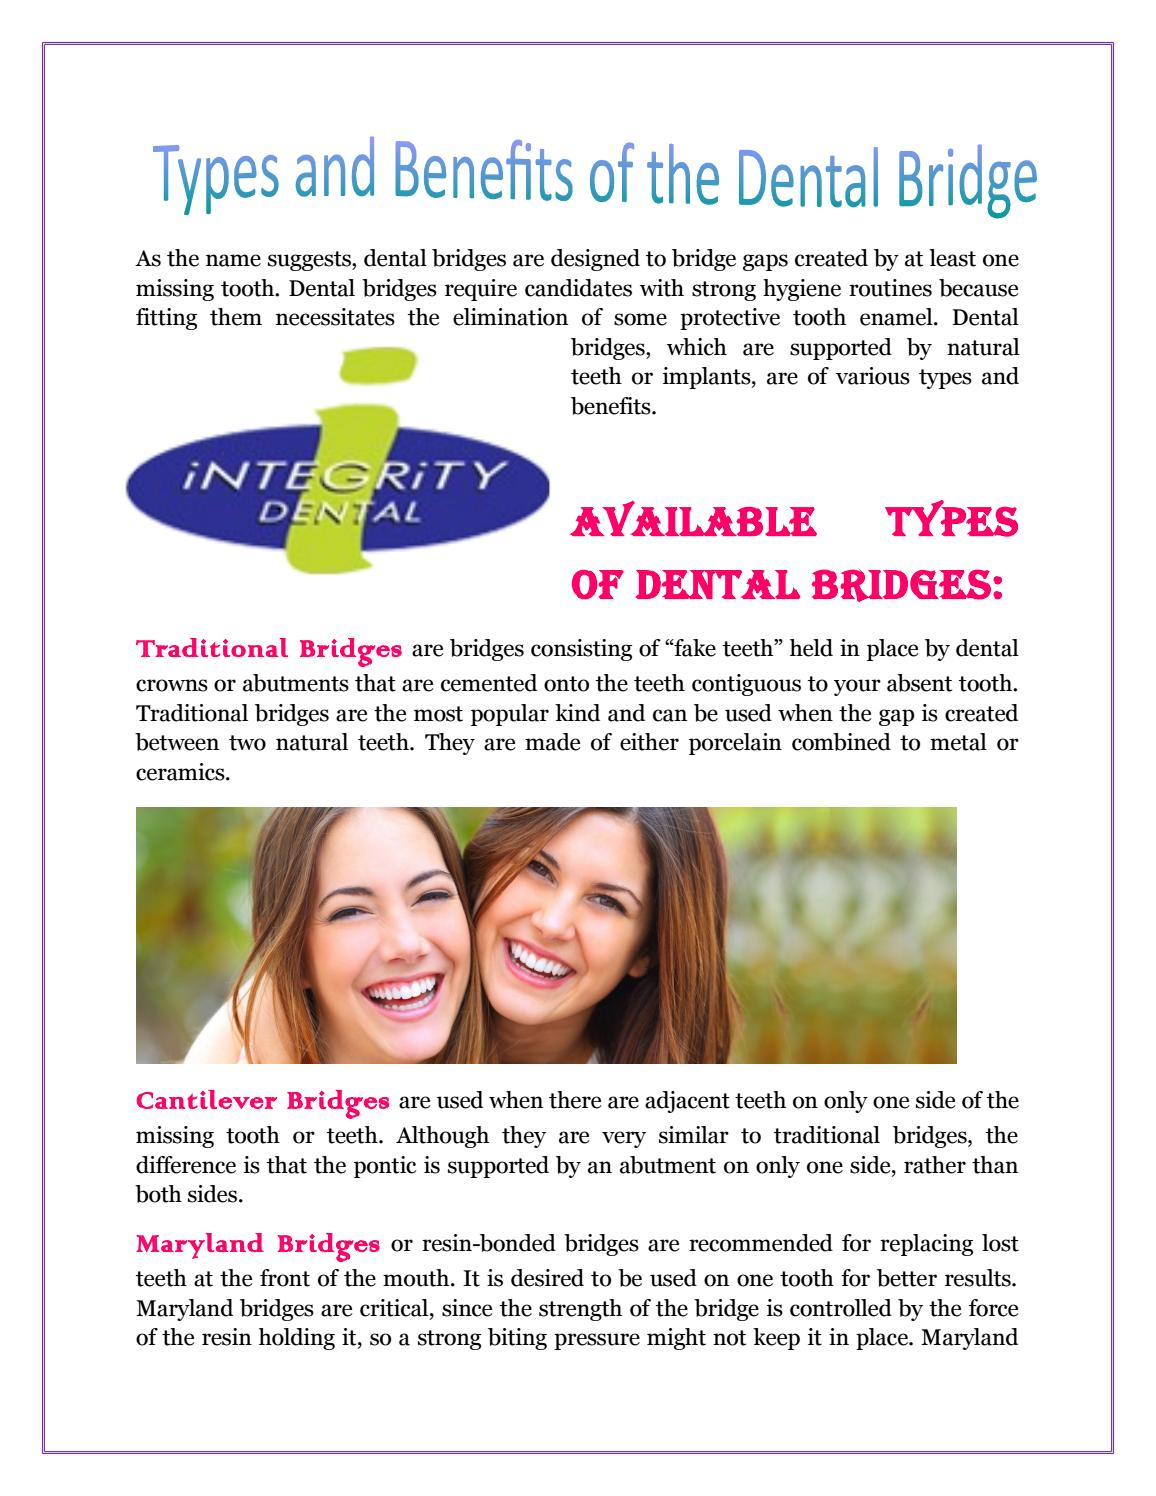 Types and benefits of the dental bridge by Integritydental - issuu